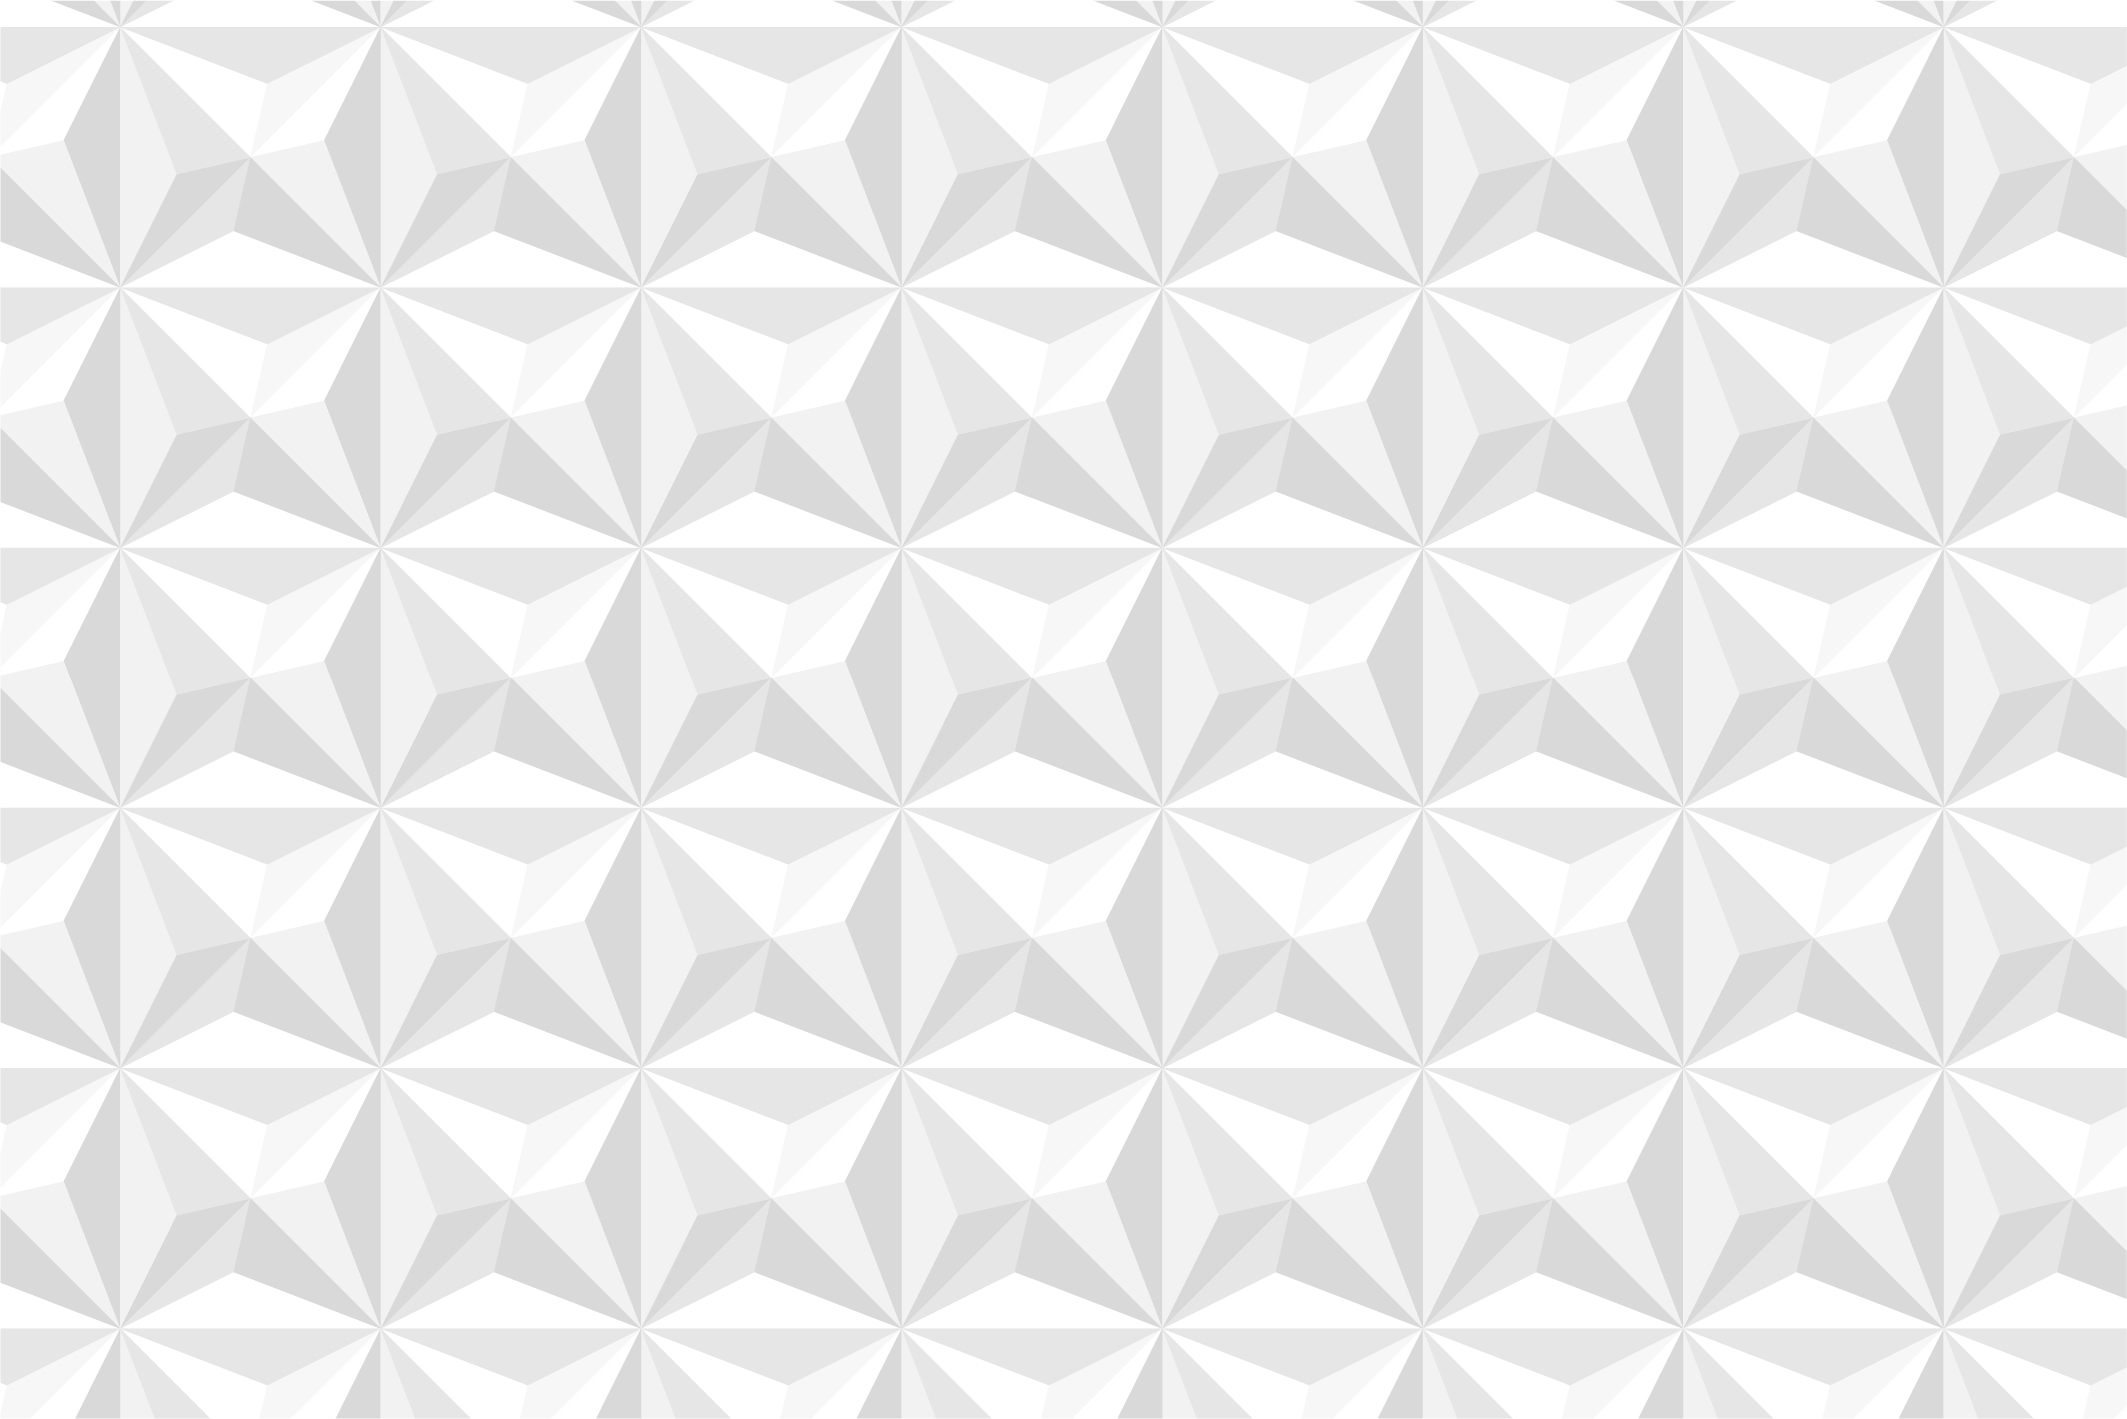 White decorative seamless textures example image 11